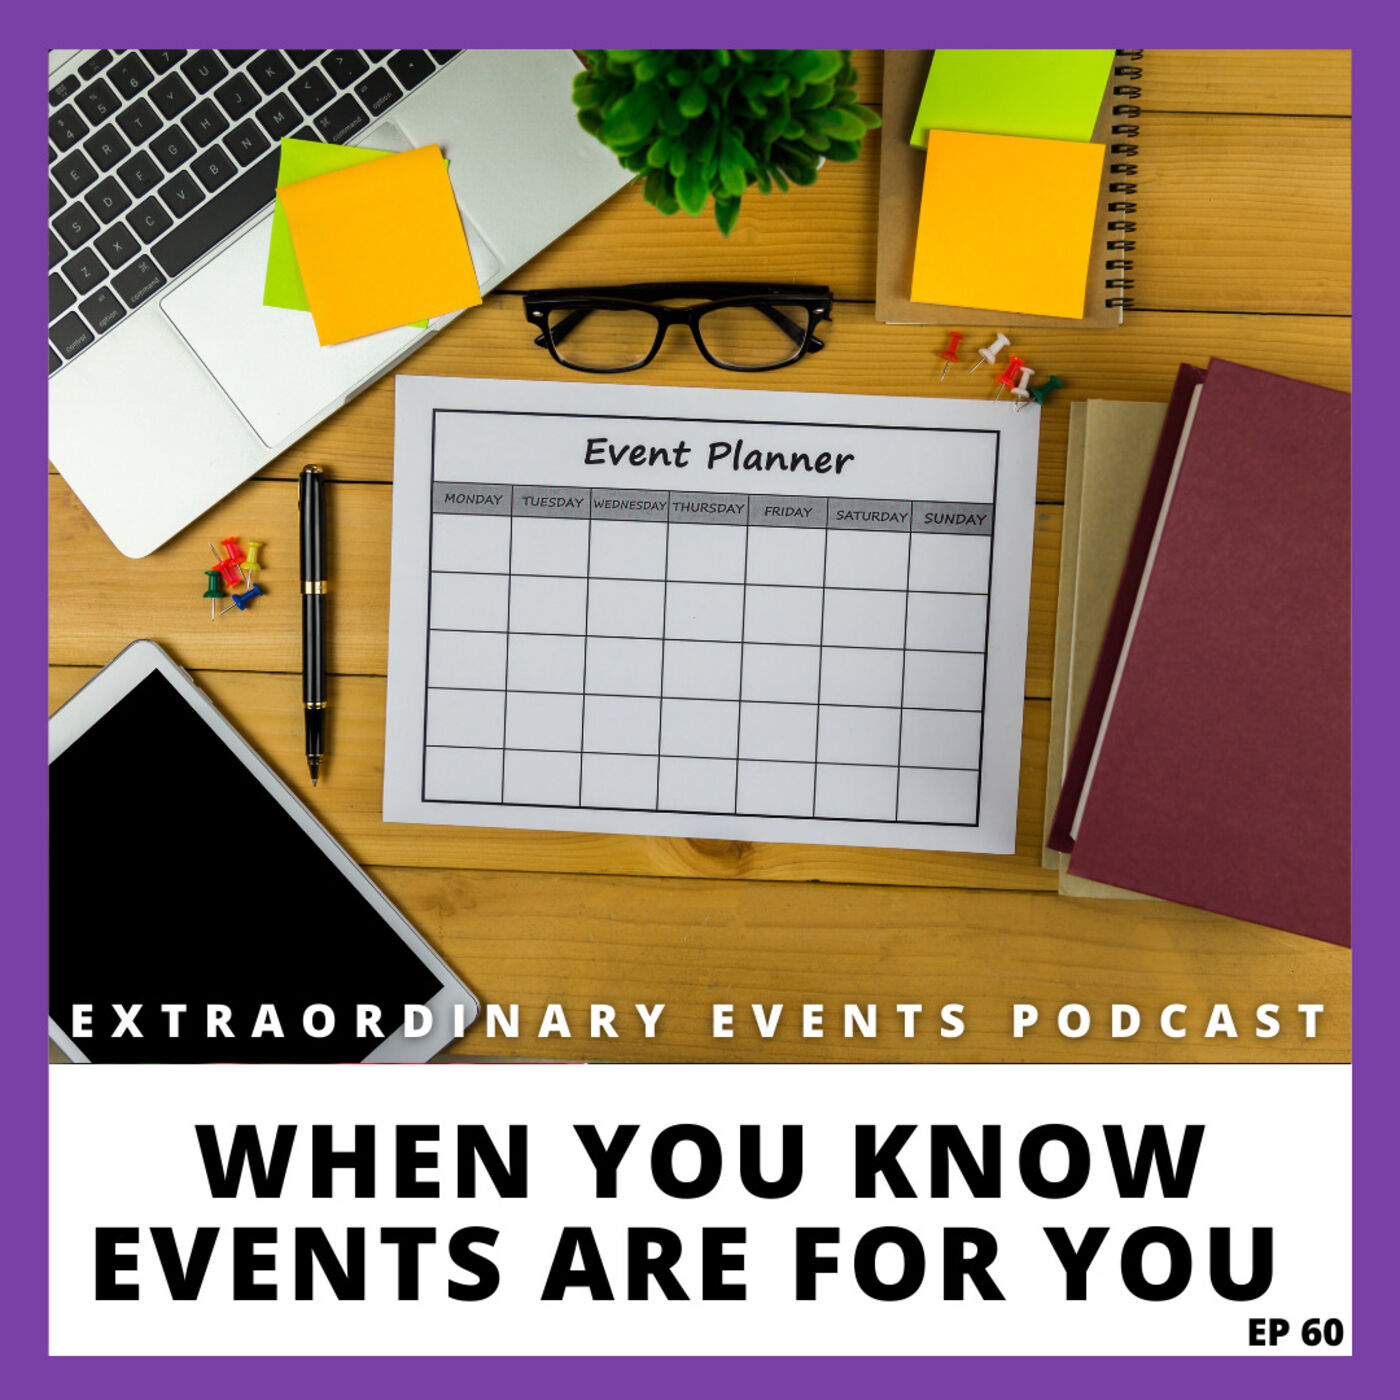 Ep 60: When You Know Events Are for You